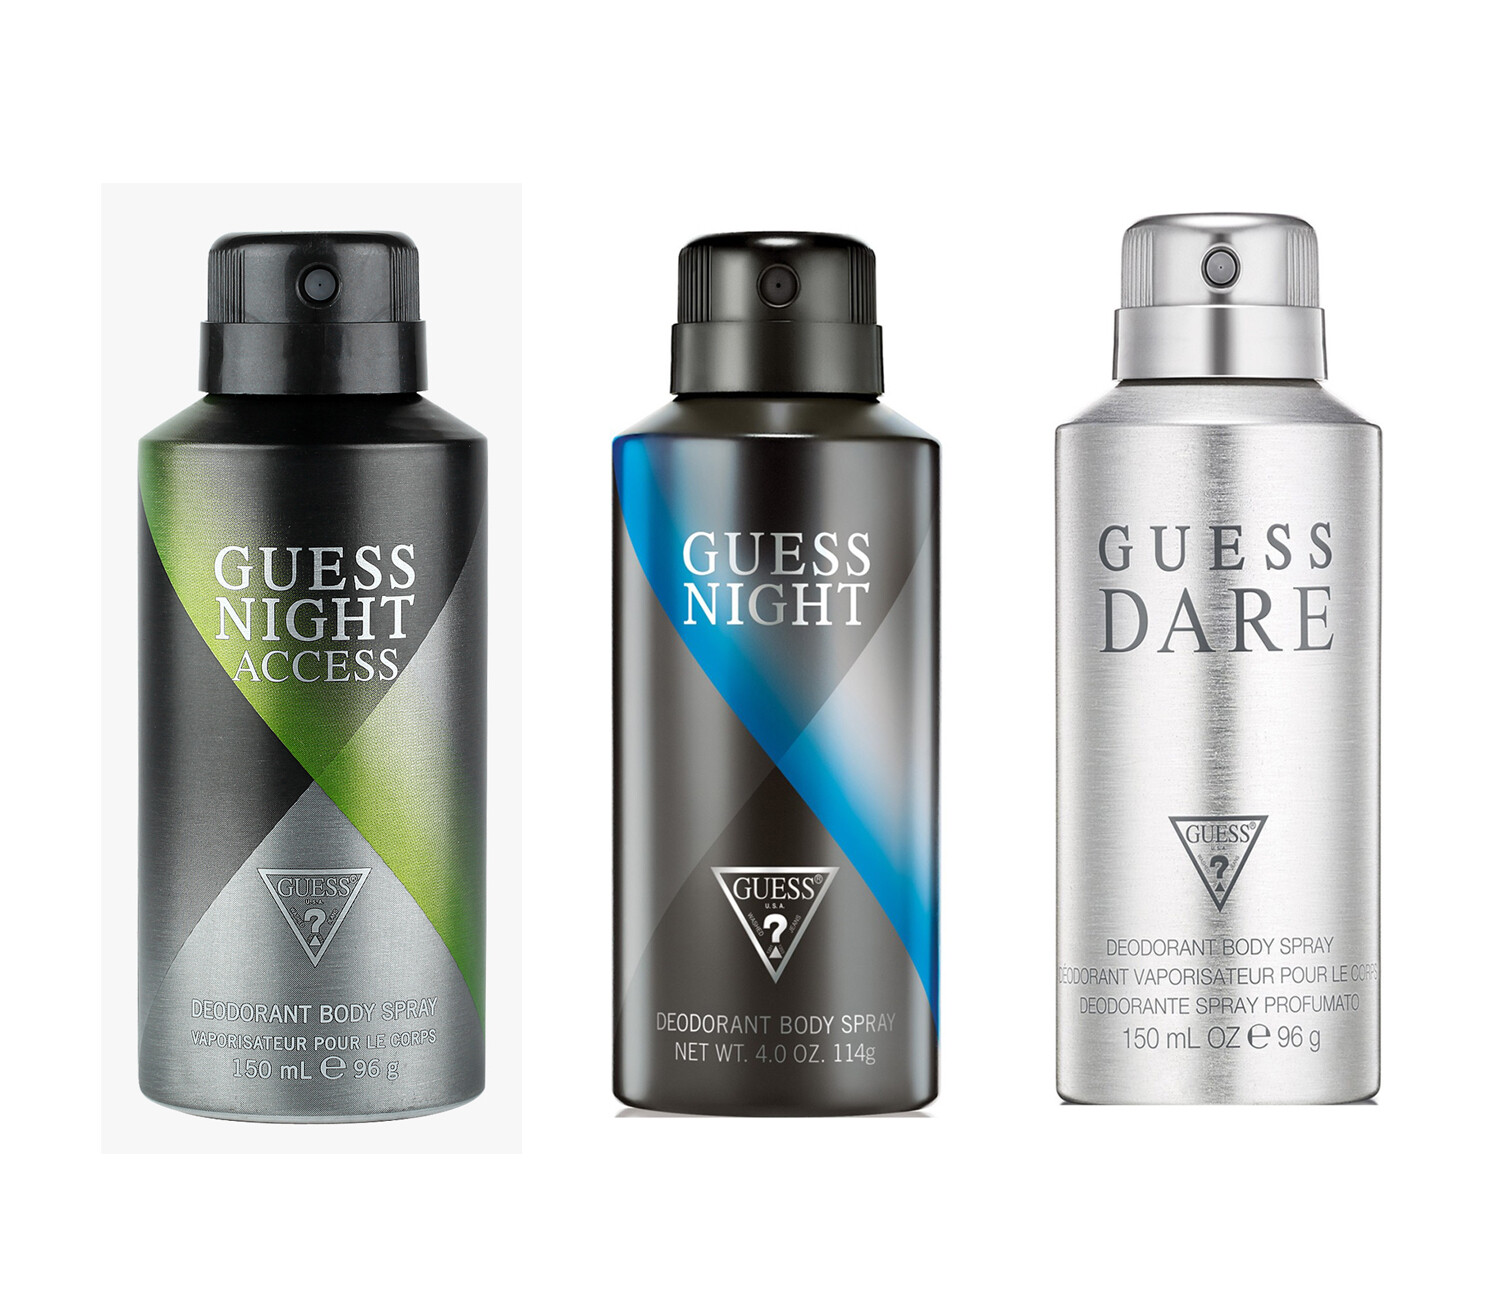 Guess Night + Night Access + Dare Deo Combo Set - Pack of 3